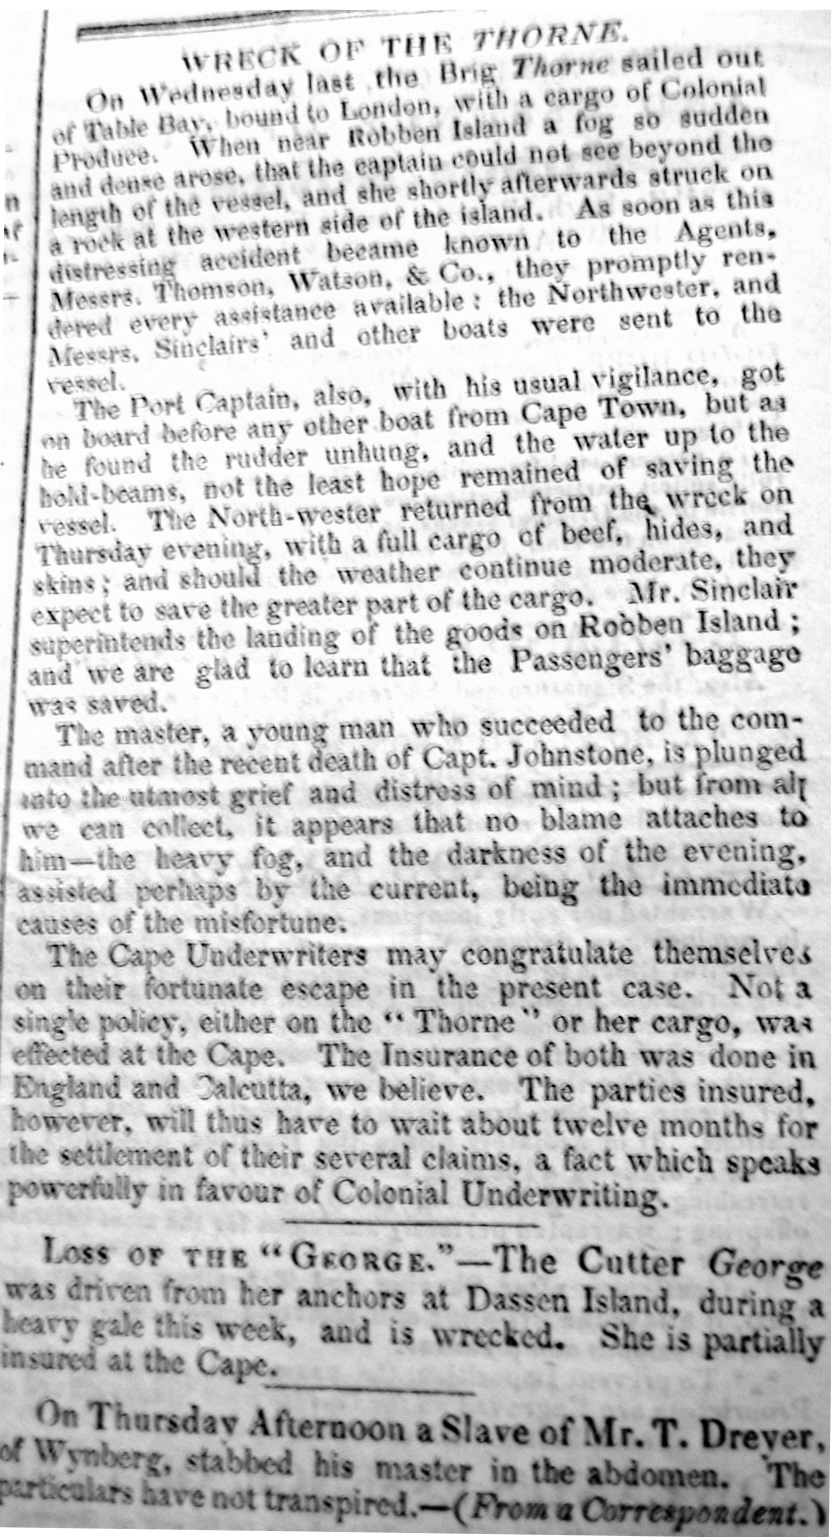 Mole's Genealogy Blog: Wreck of the brig Thorne 18 May 1831